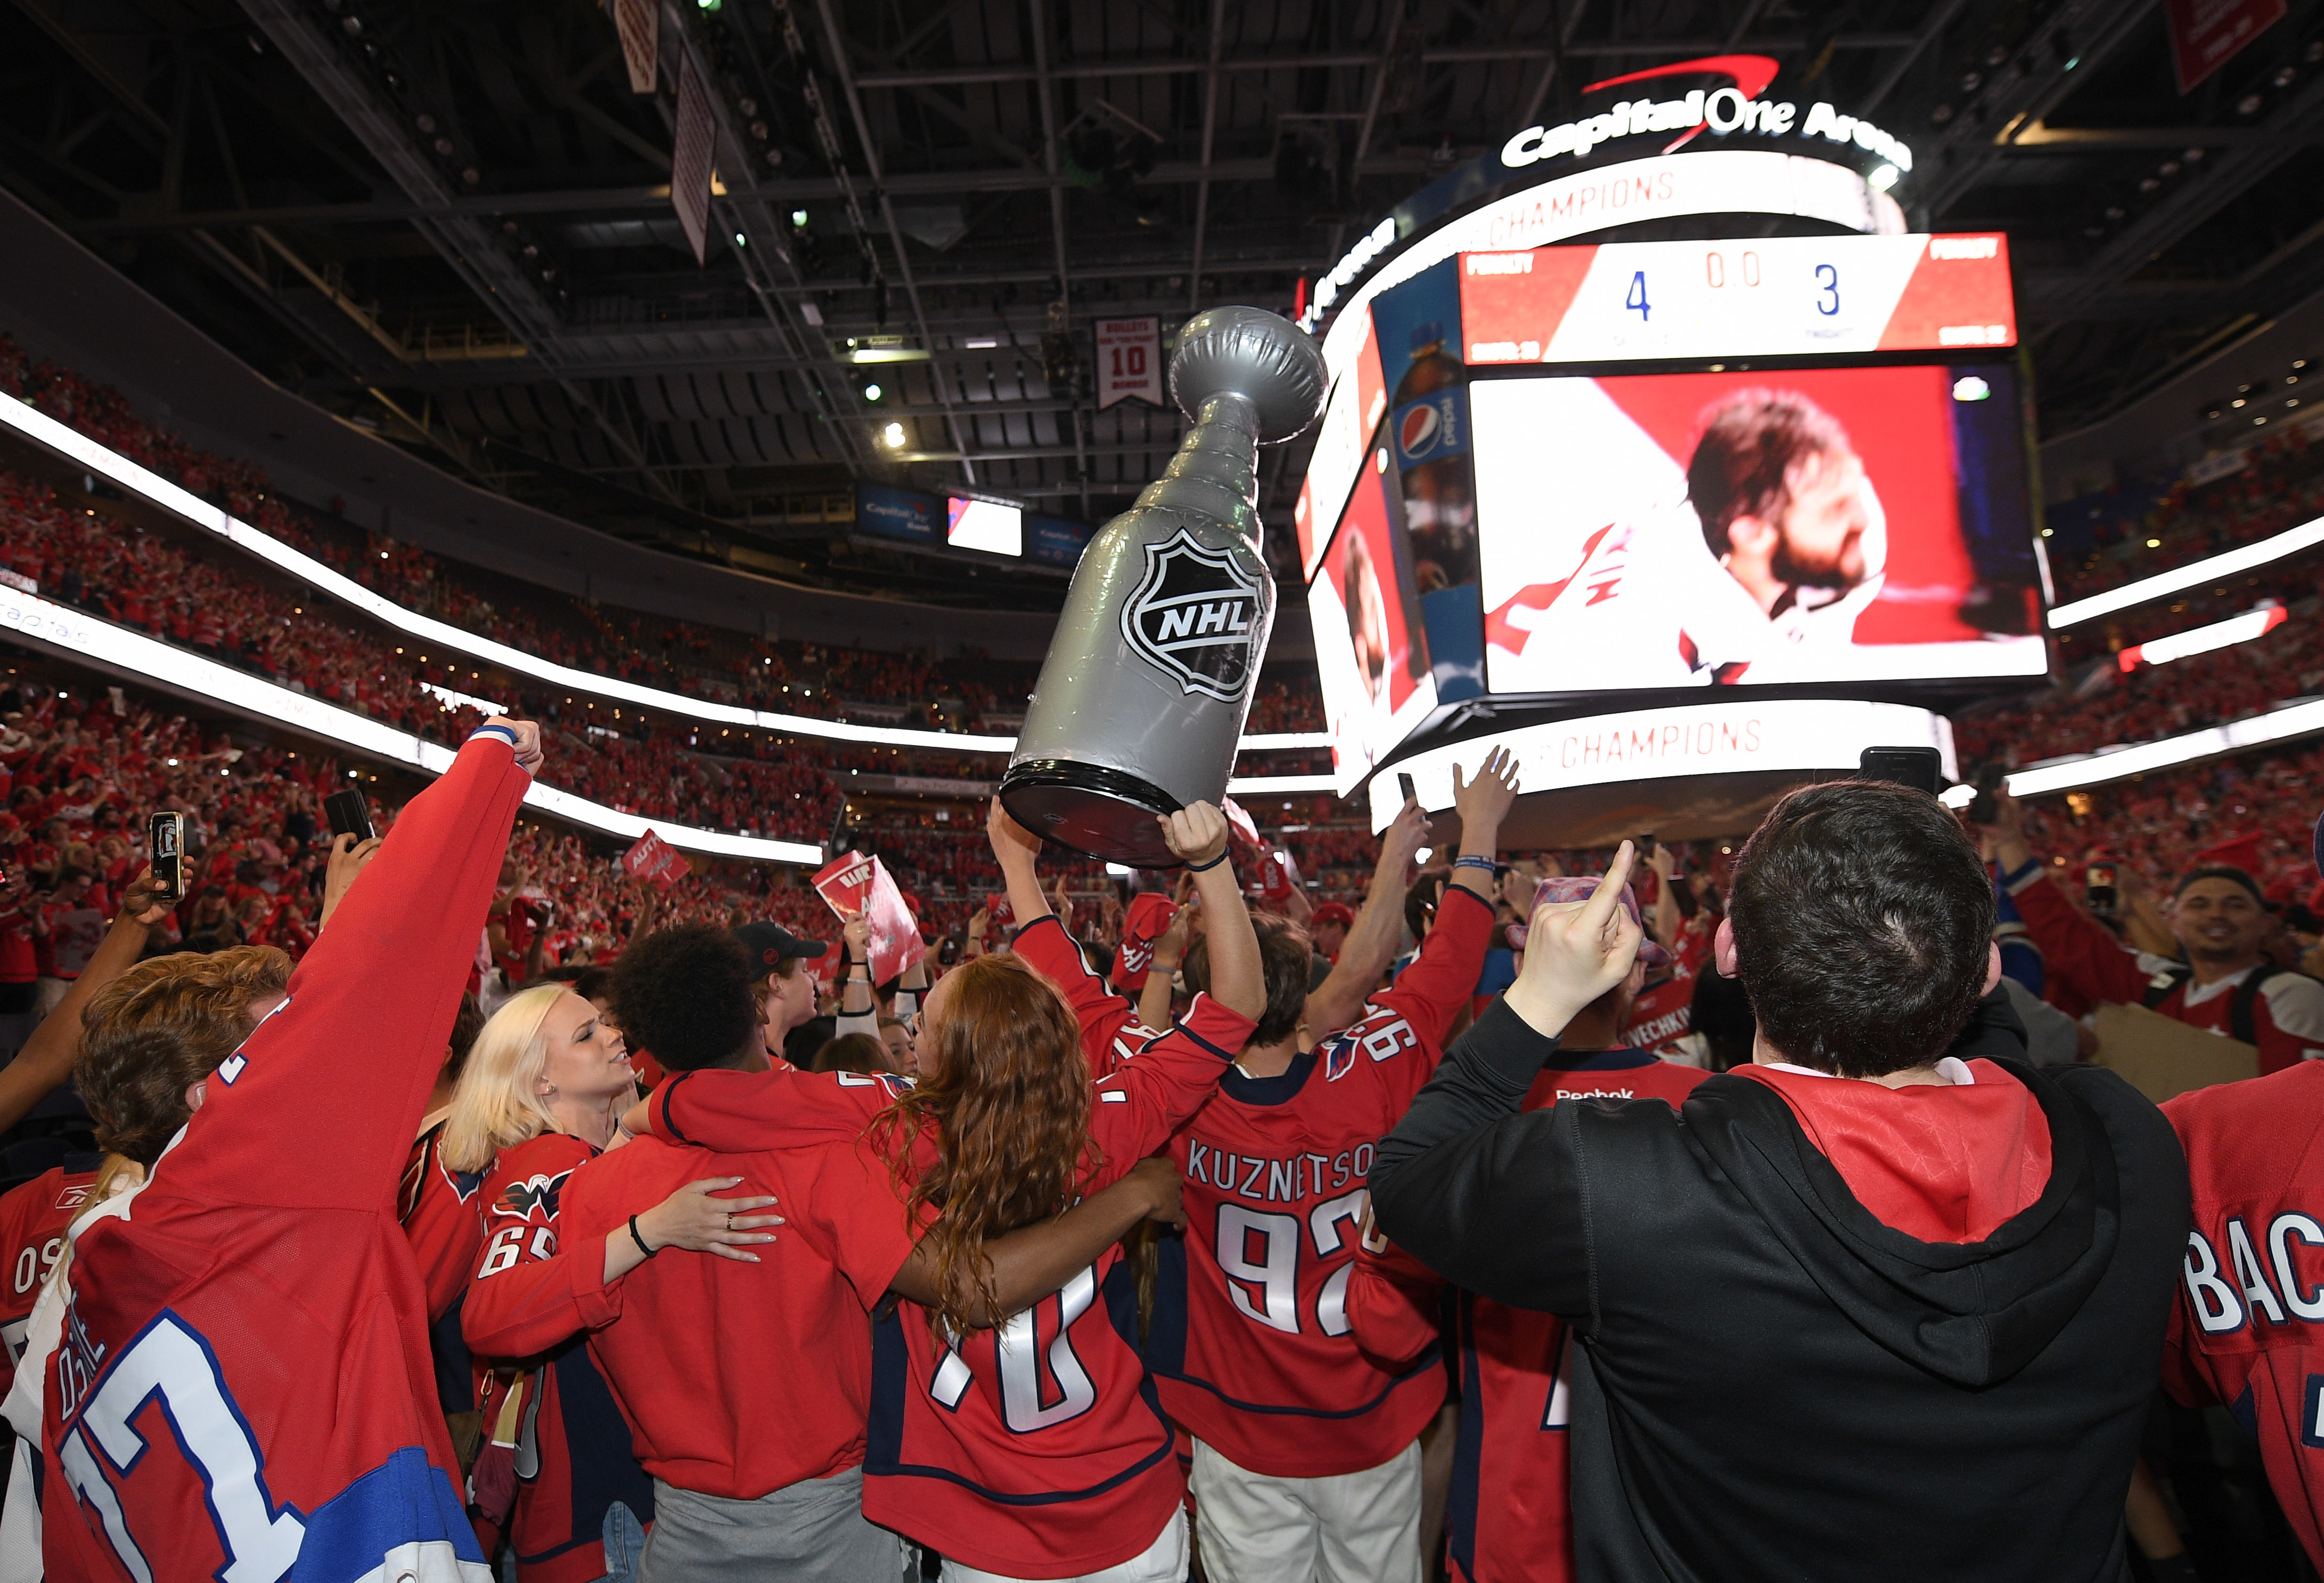 53d848eff Stanley Cup championship parade to finally become reality for title-starved  fans